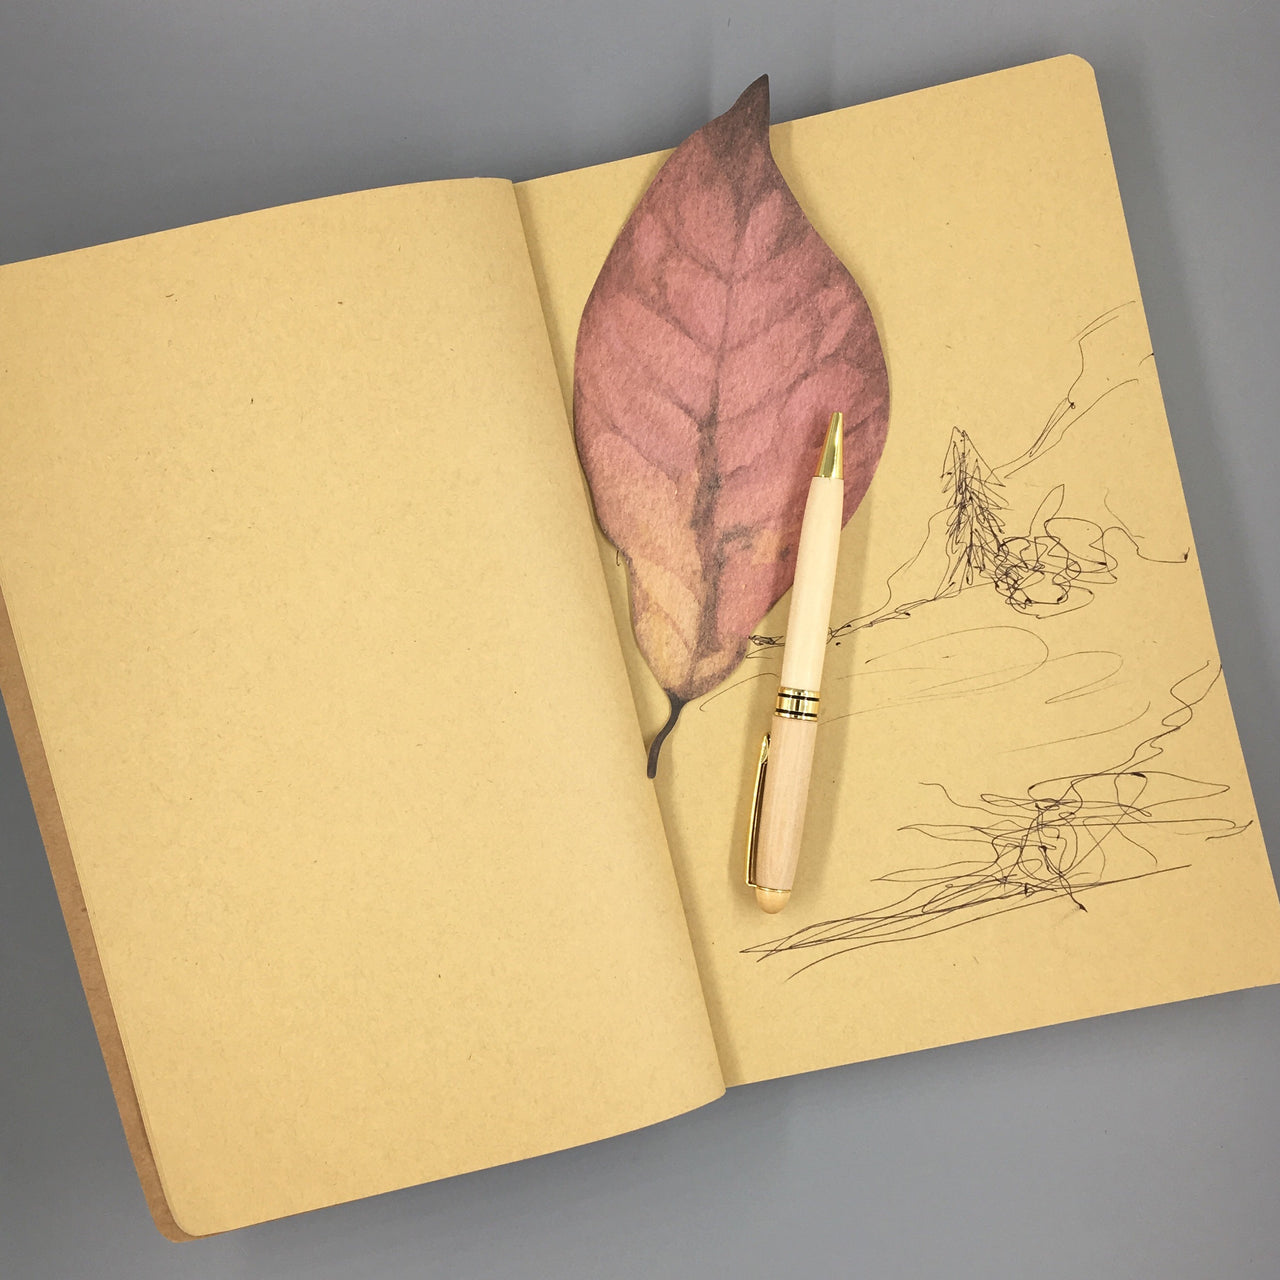 Twine-Bound Kraft Sketchbook shown open to a sketch